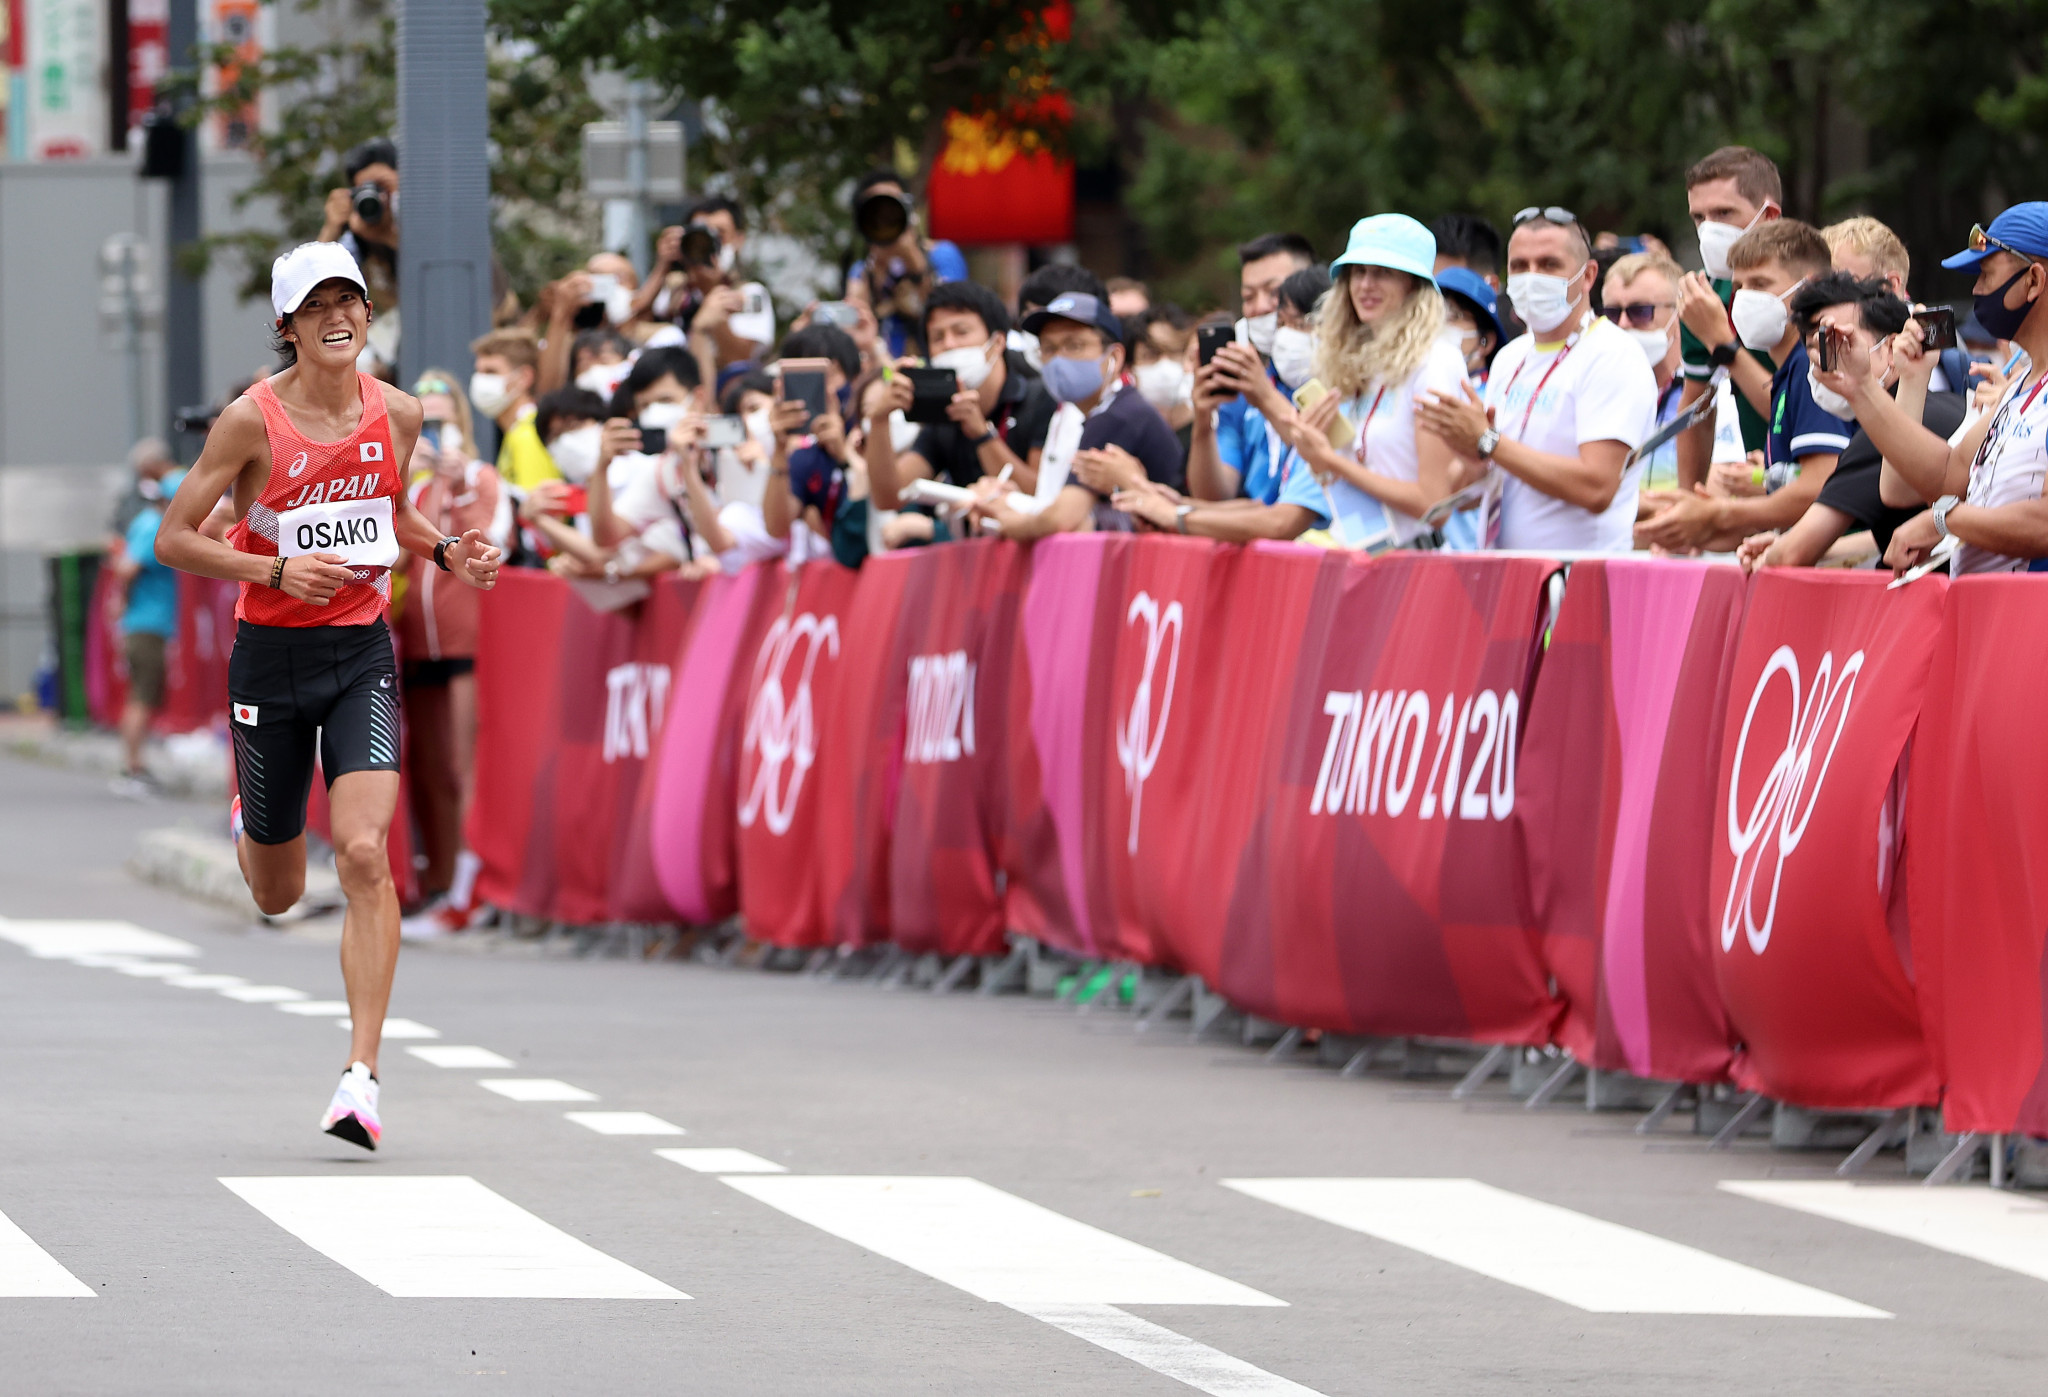 Tokyo 2020 urges public to stay away from marathon over COVID concerns